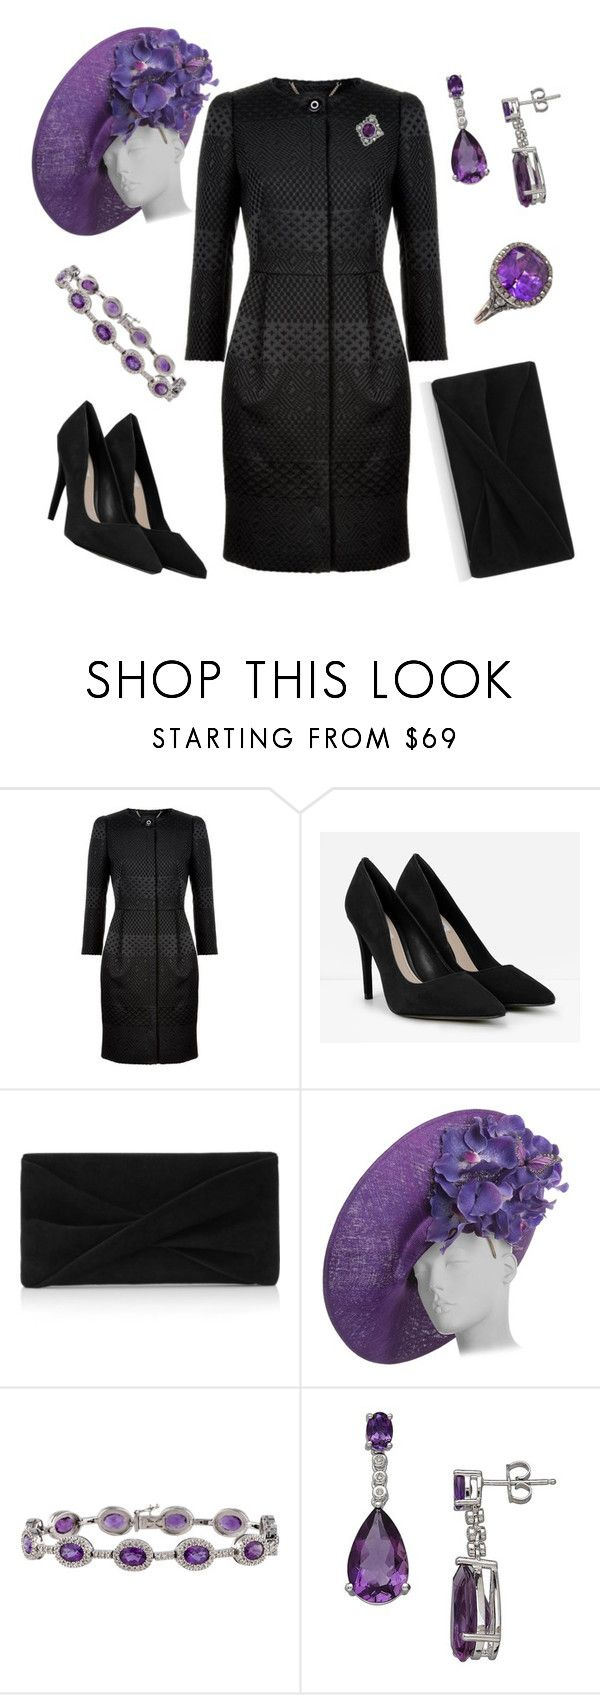 """""""Statement Hat"""" by nmccullough ❤ liked on Polyvore featuring Ted Baker, CHARLES & KEITH, Reiss, Philip Treacy and Lord & Taylor"""